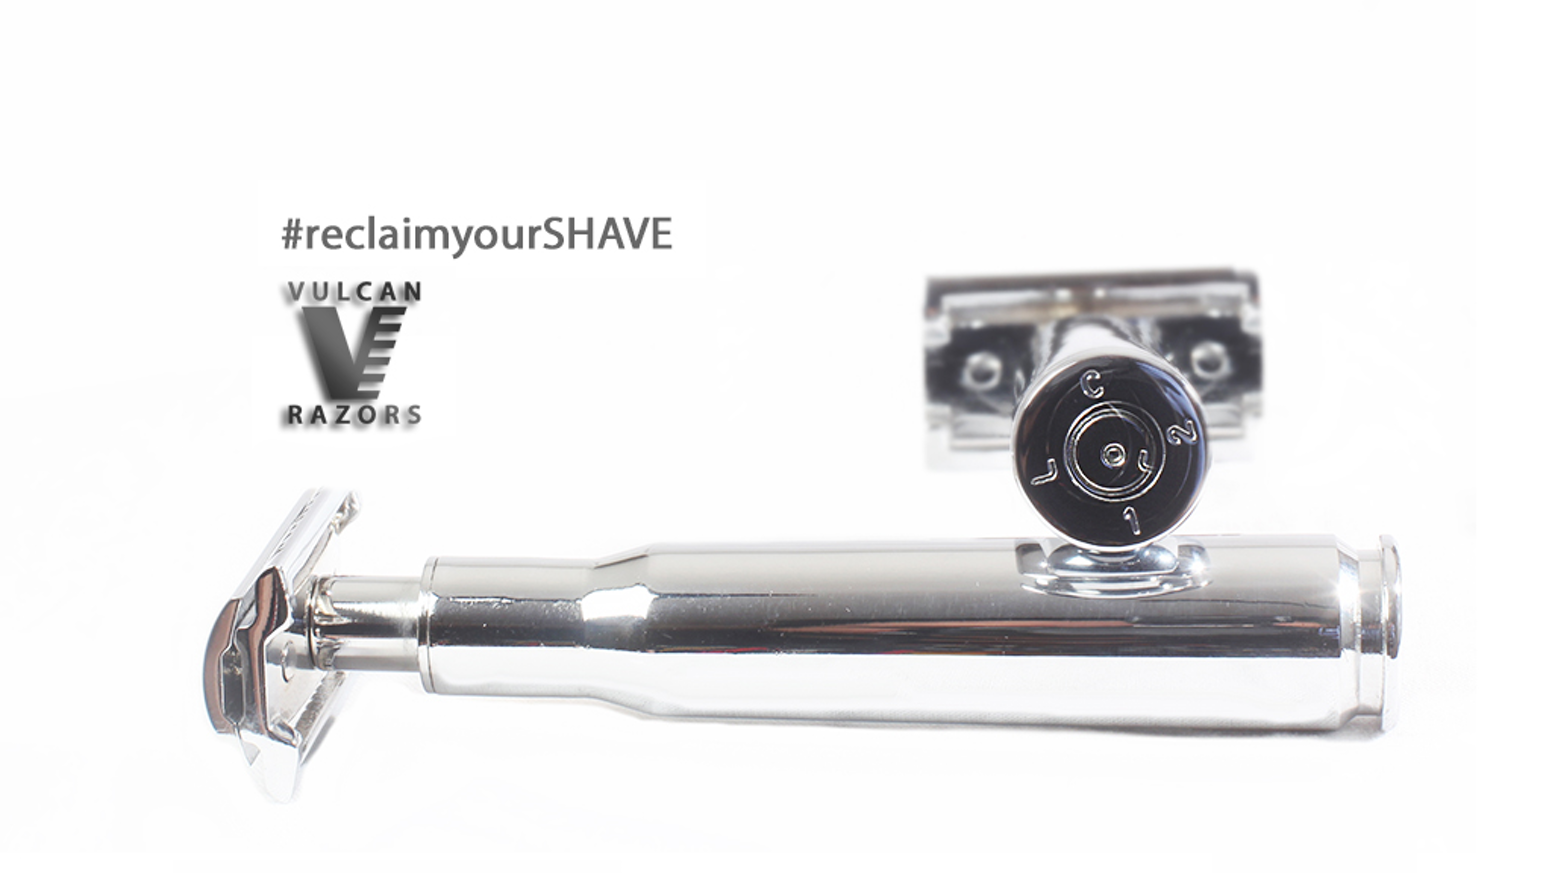 The Vulcan .50 Caliber Razor is restoring the original standard in shaving. Reclaim your shave through the art of repurposing.